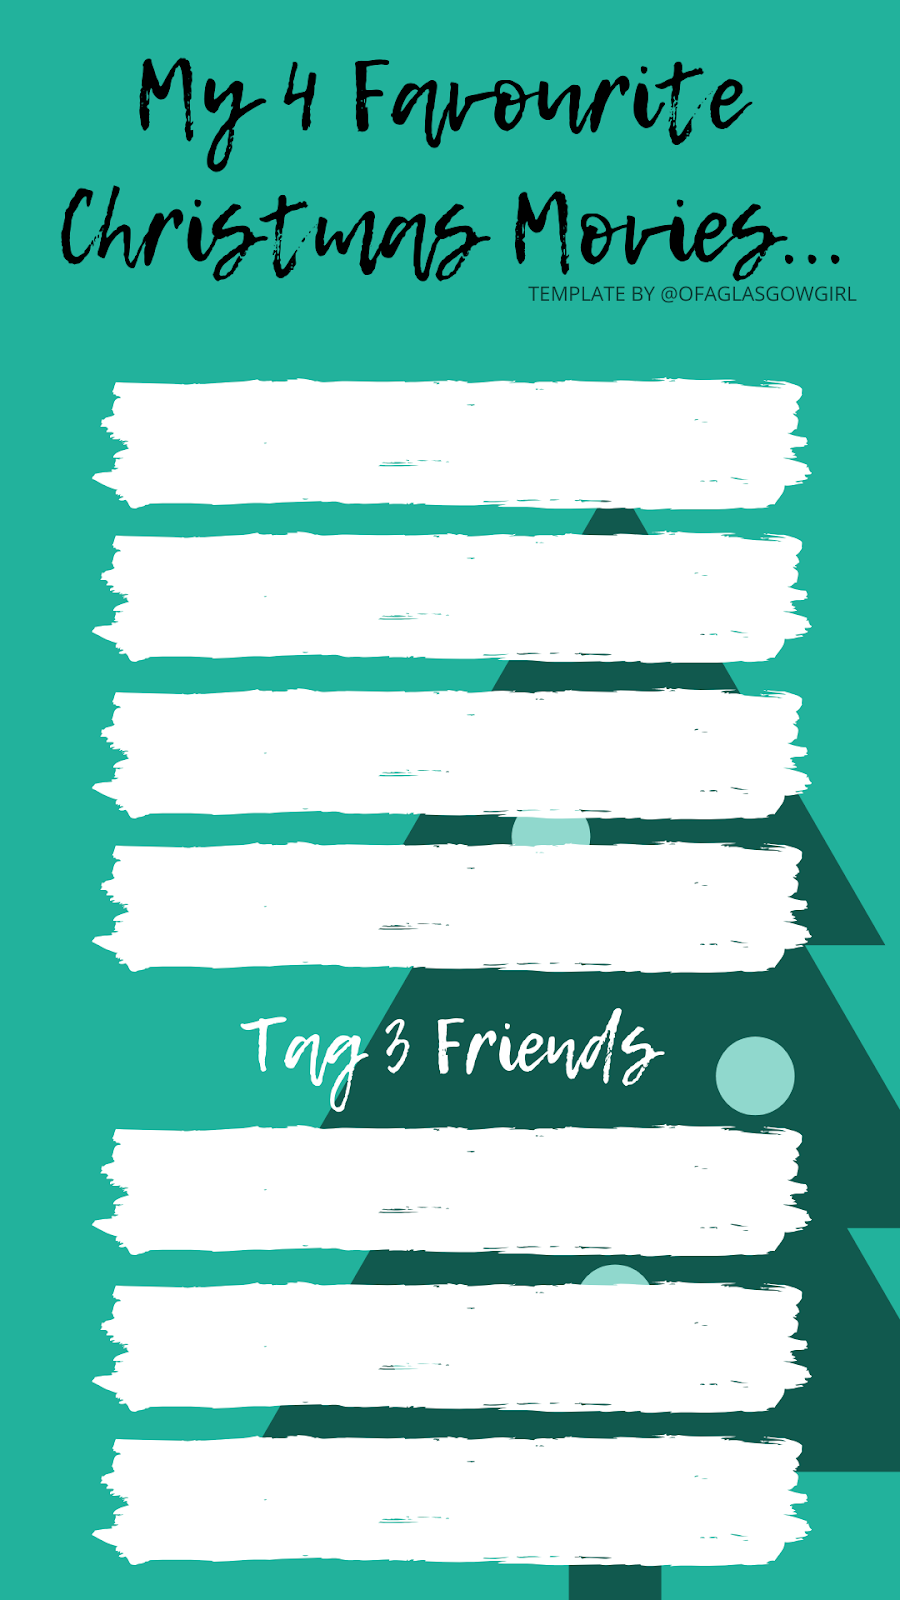 My 4 favourite Christmas films are... Instagram story template by @ofaglasgowgirl